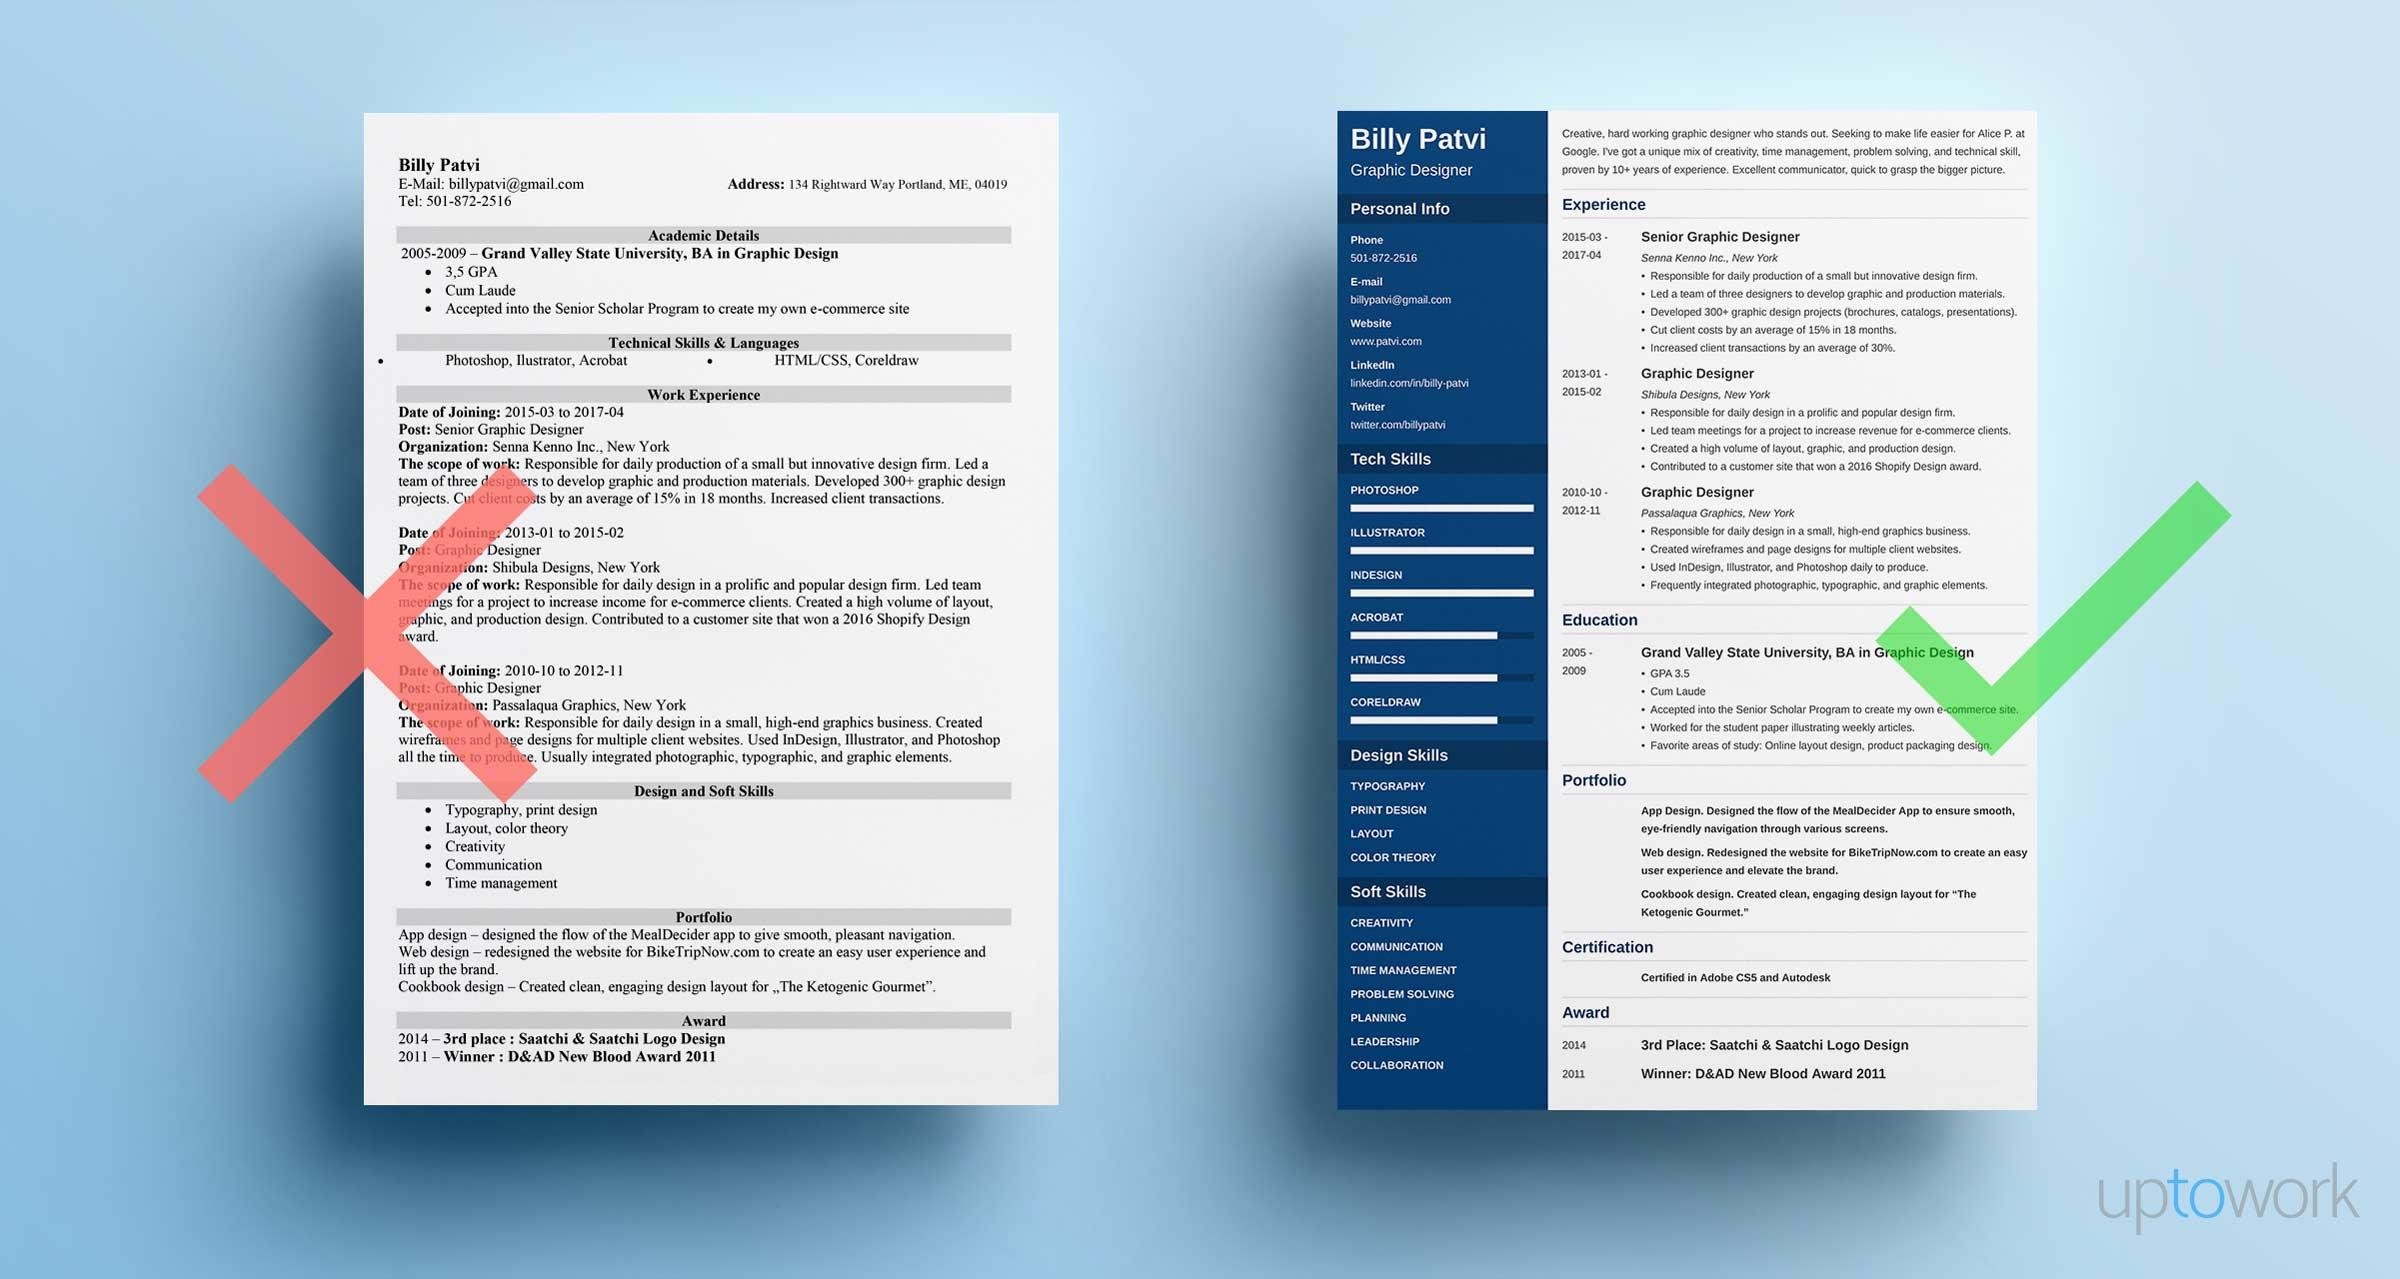 graphic designer resume examples and design tips for samples format insurance industry Resume Graphic Design Resume 2019